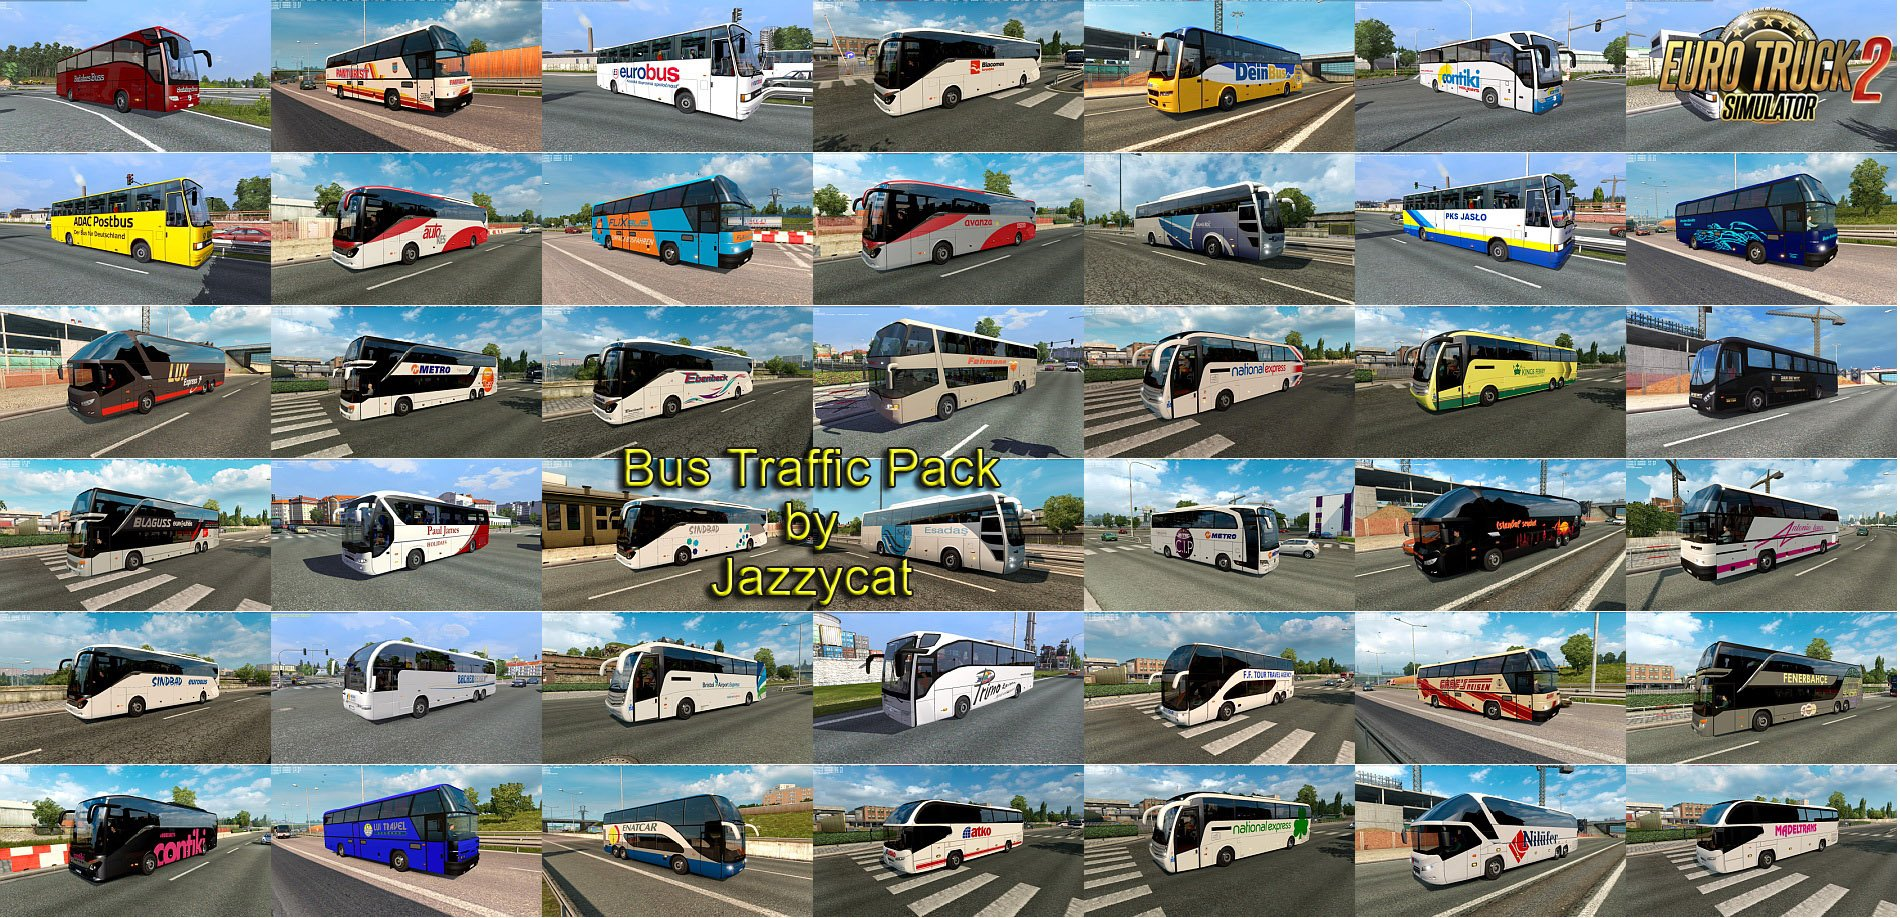 Bus Traffic Pack v3.2 by Jazzycat